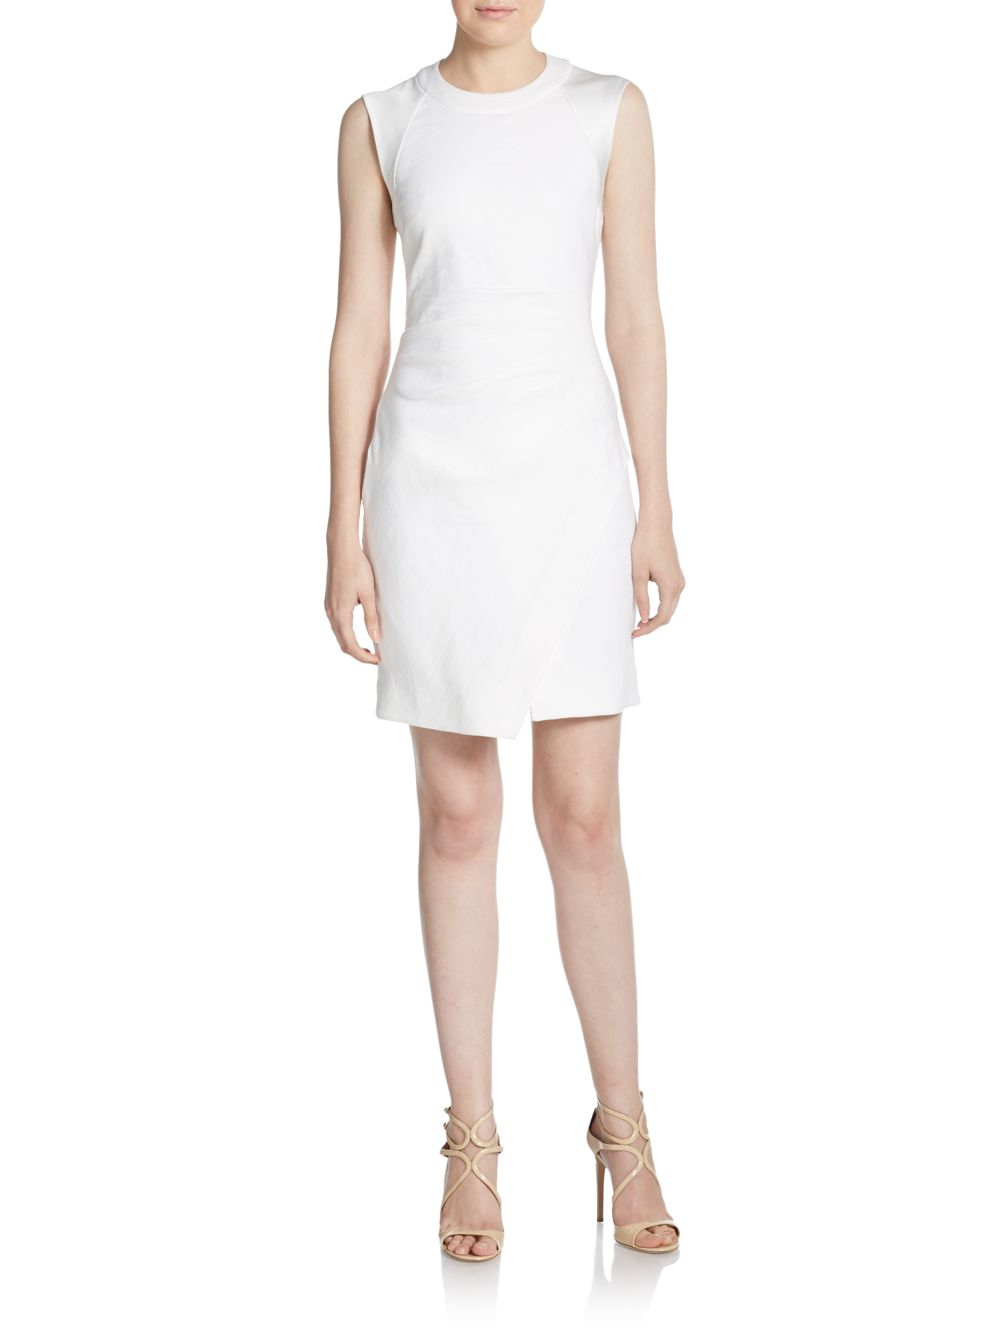 41f091d6 Lyst - L'Agence Stretch Cotton & Linen Sheath Dress in White